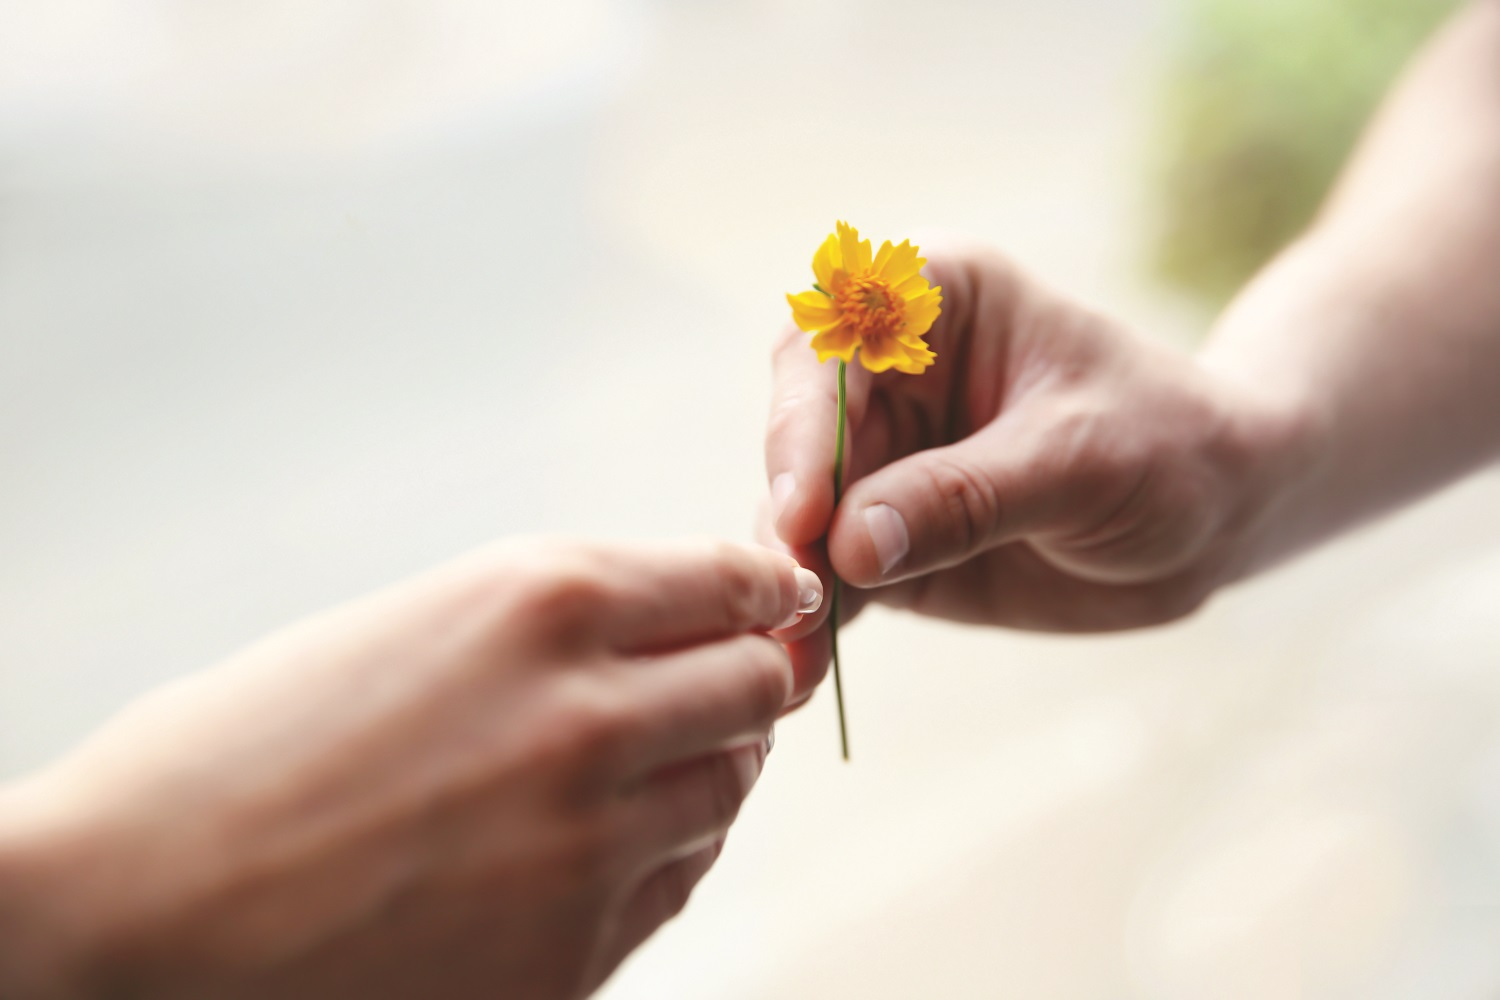 hands, flower, community foundation